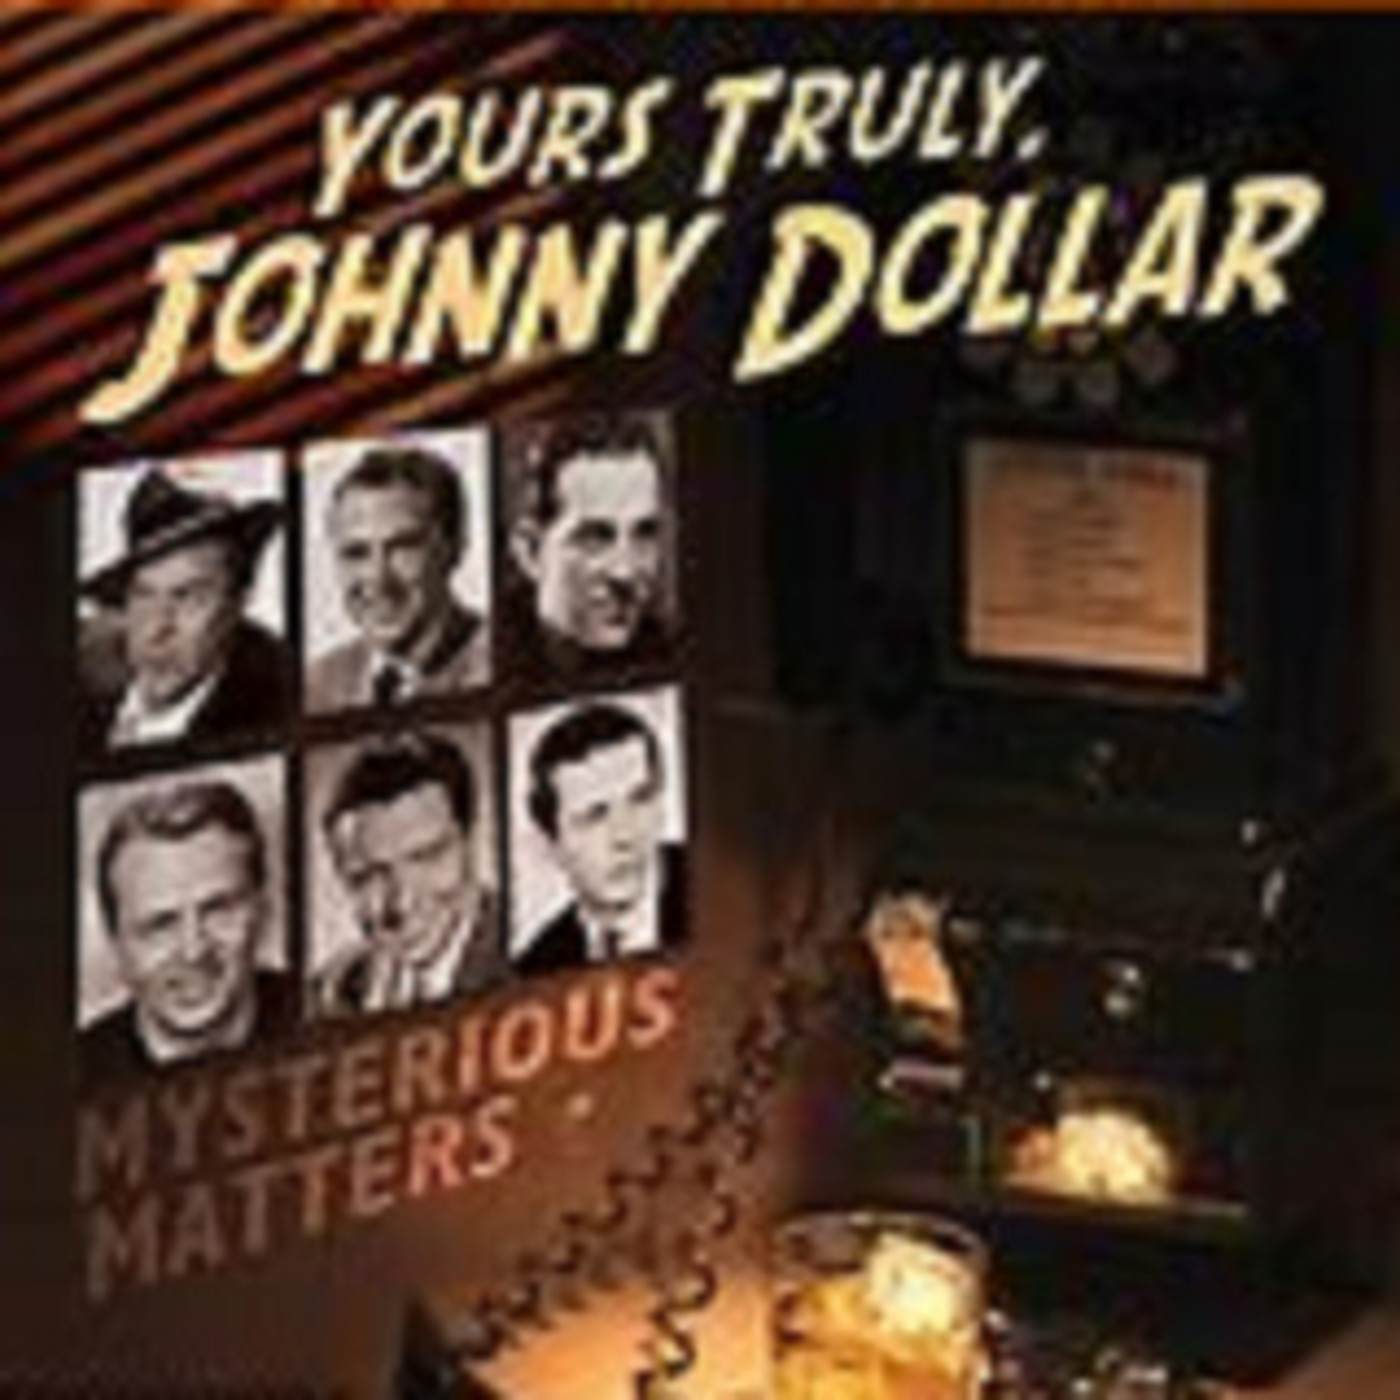 Yours Truly, Johnny Dollar - 090962, episode 808 - The Four Cs Matter